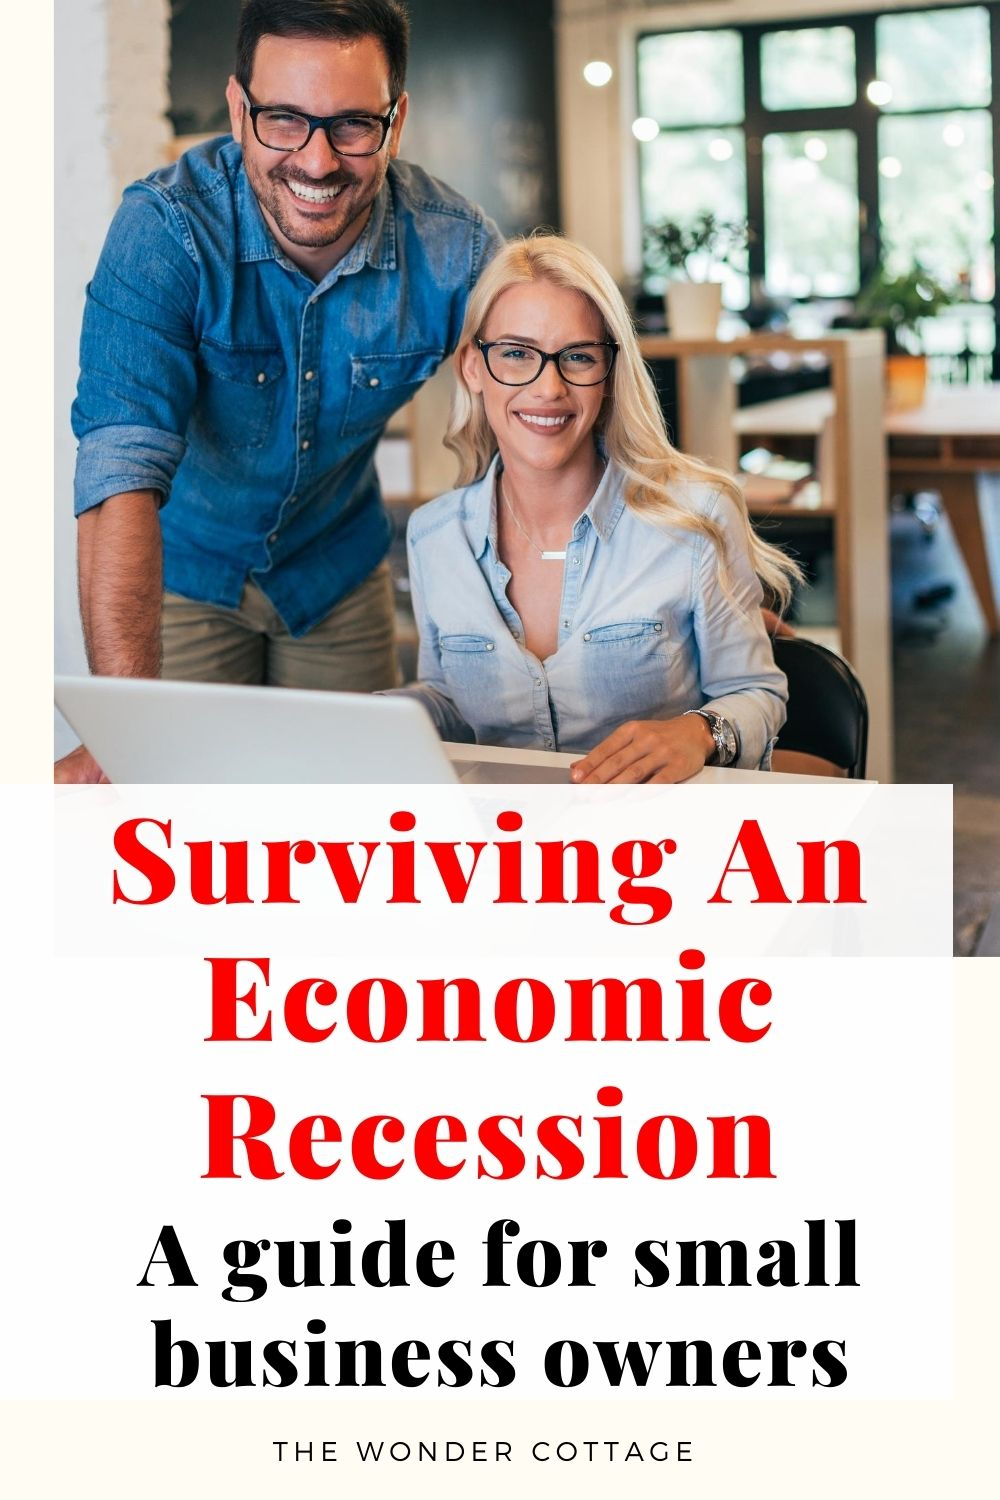 Surviving a Recession: A Guide for Small Business Owners